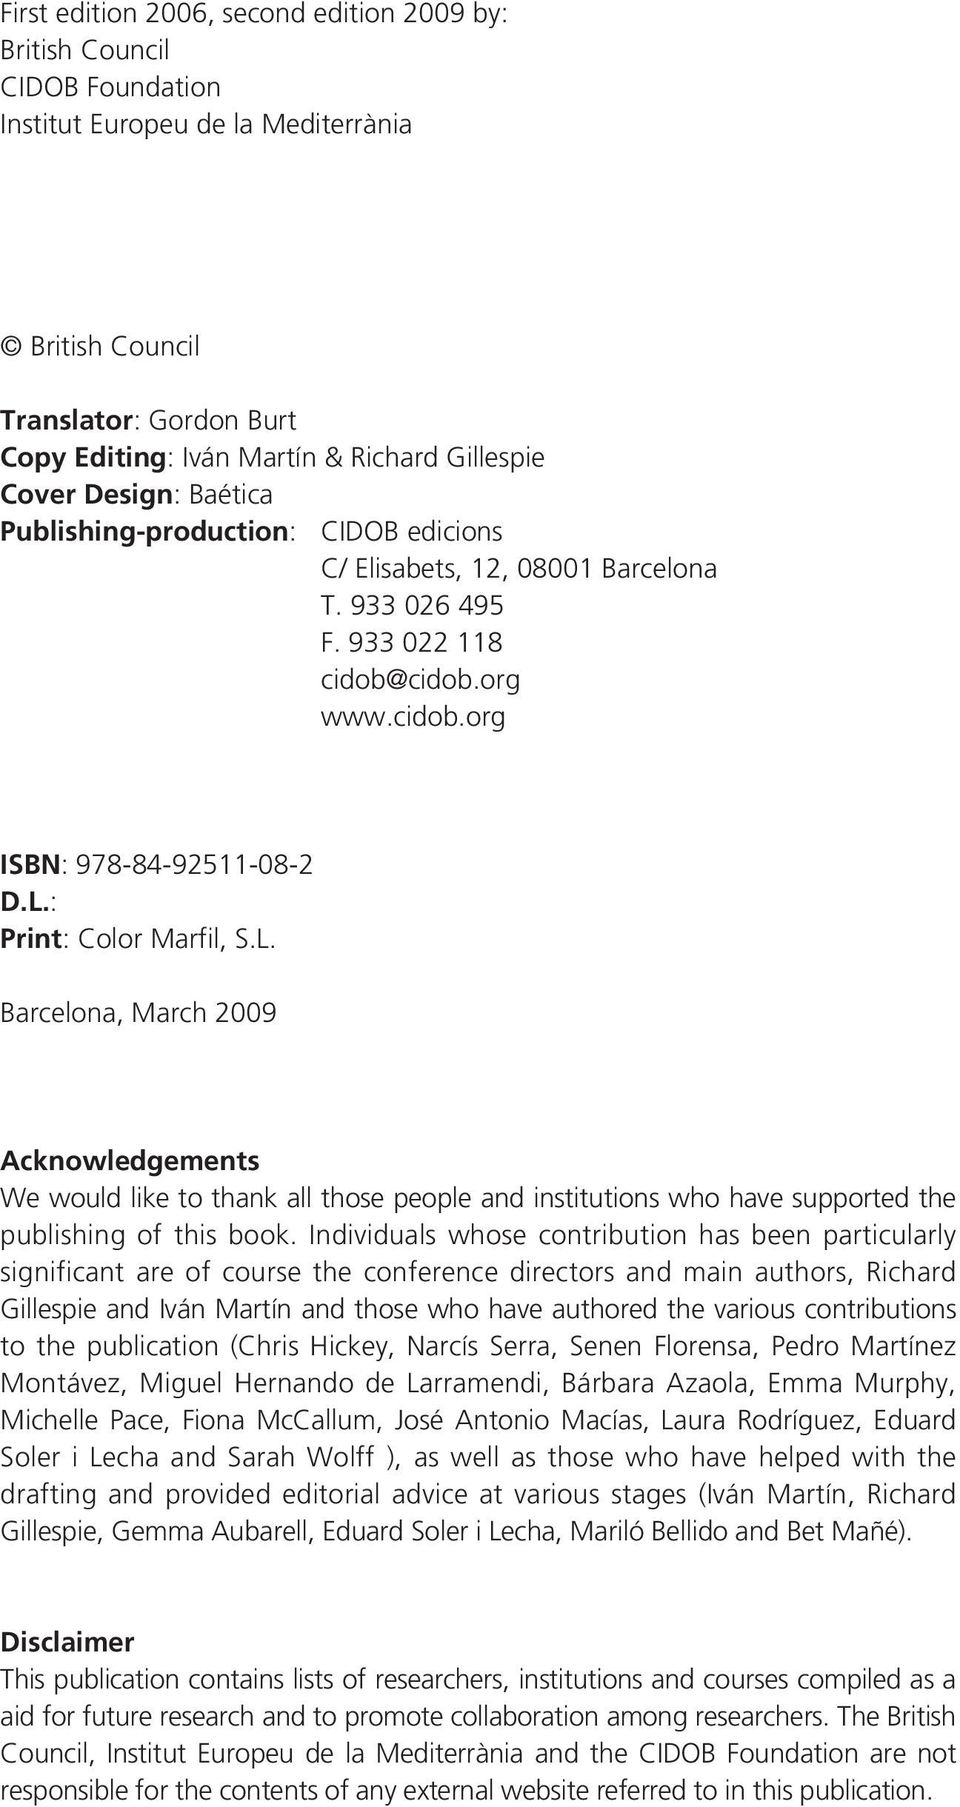 : Print: Color Marfil, S.L. Barcelona, March 2009 Acknowledgements We would like to thank all those people and institutions who have supported the publishing of this book.